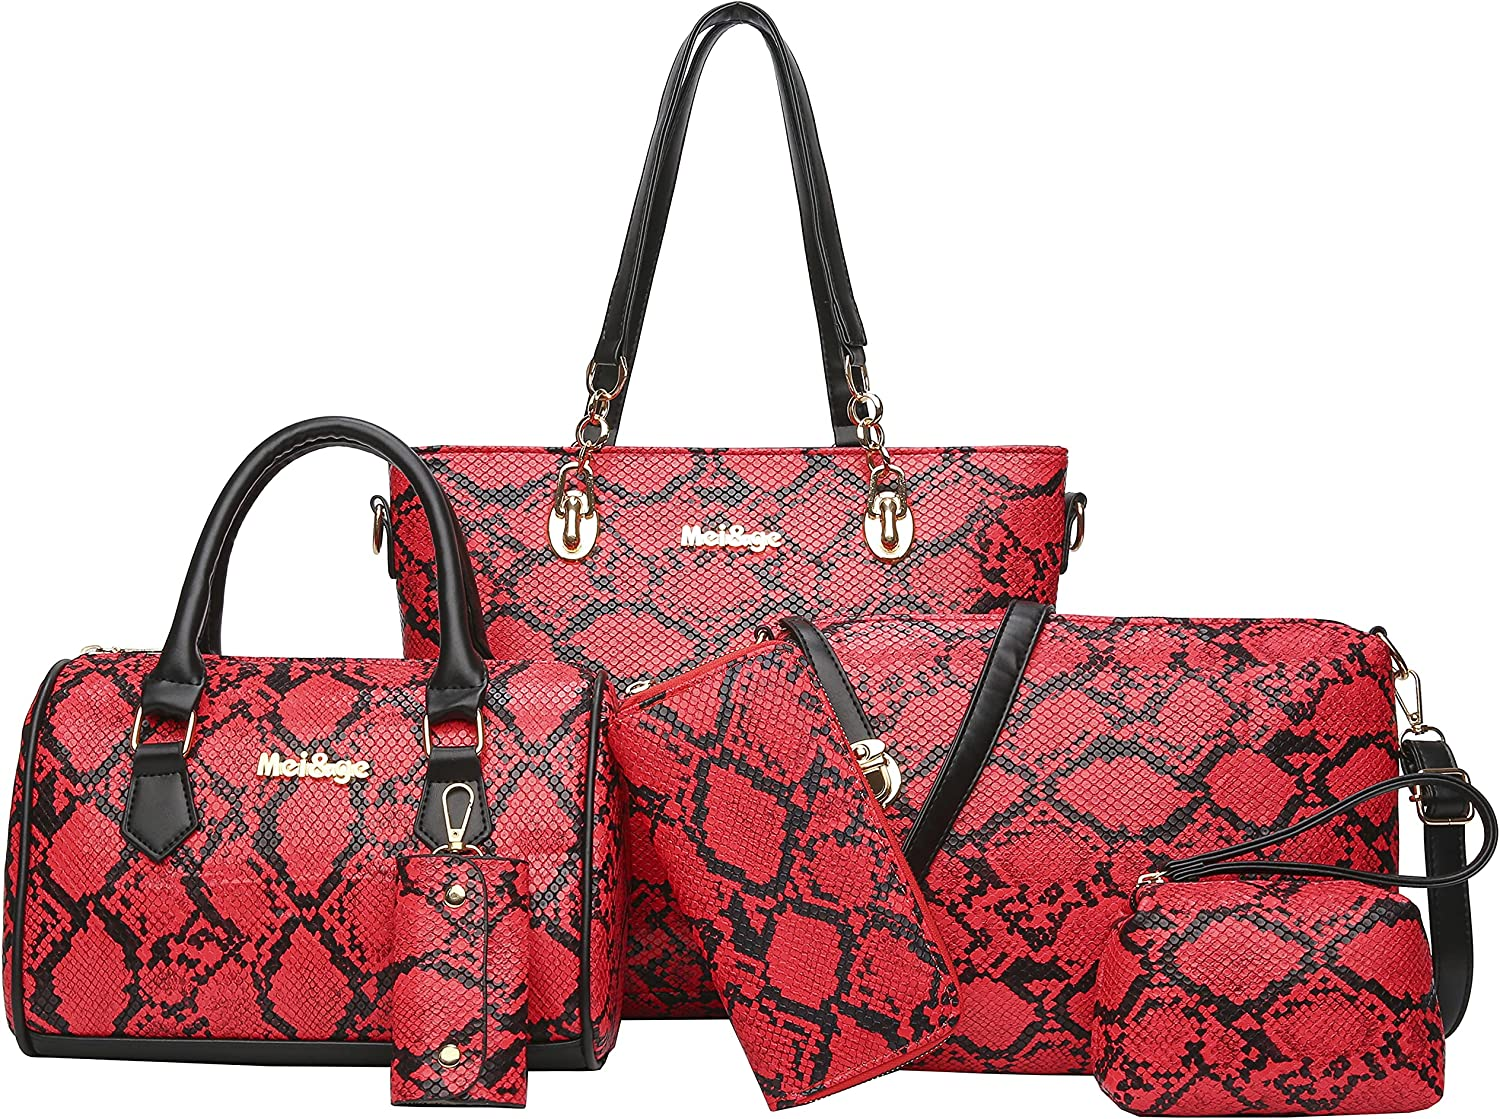 2E-youth Designer Max 87% OFF Cheap super special price Purses and Handbags Women Satchel Shoulder for